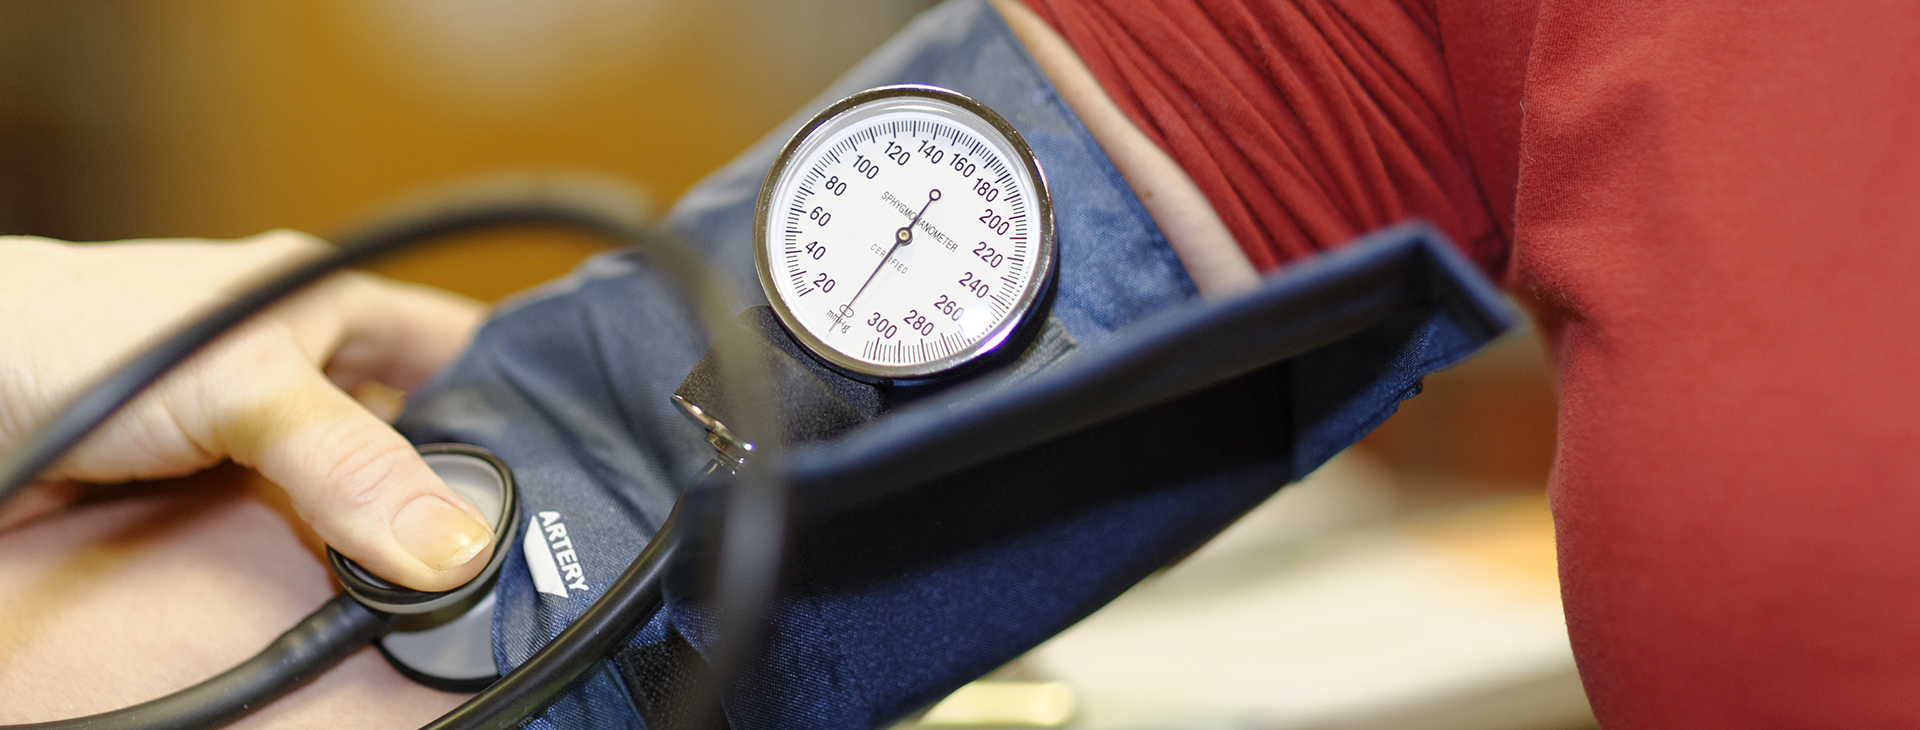 blood pressure checks for homeless